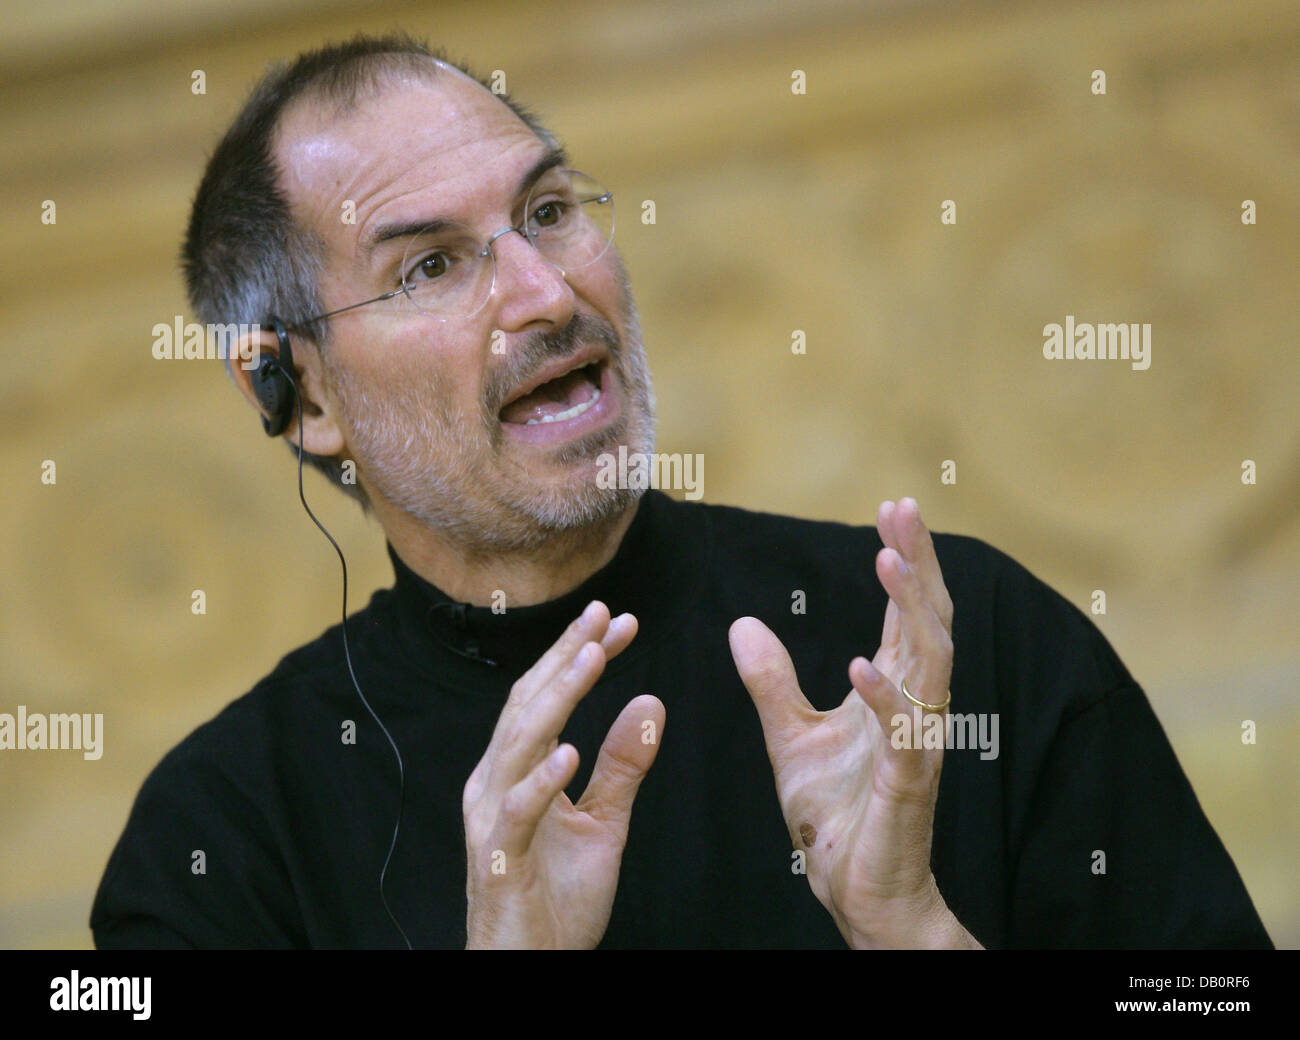 Apple CEO Steve Jobs is pictured during the presentation of the iPhone in Berlin, 19 September 2007. Photo: Peer - Stock Image